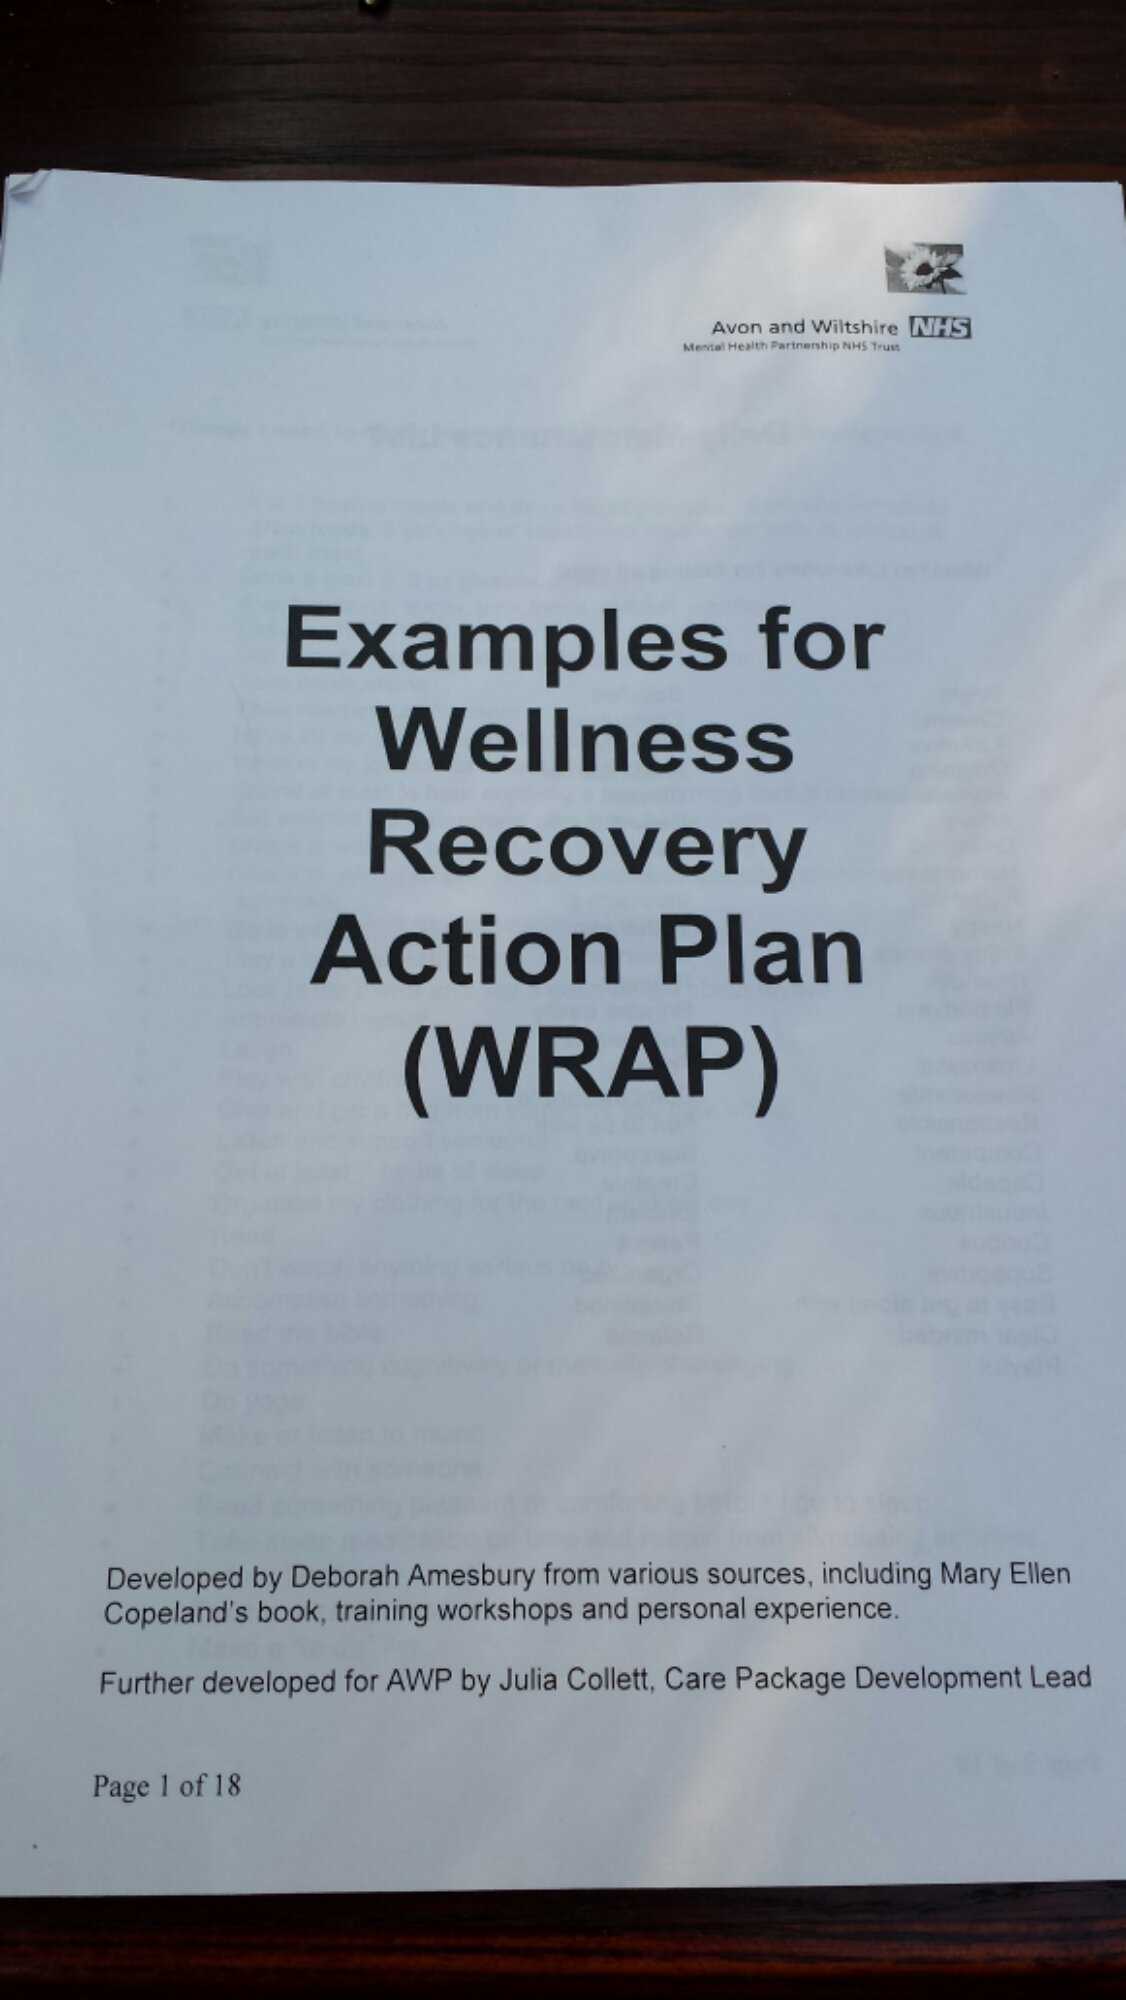 Worksheets Wellness Recovery Action Plan Worksheets sample wrap wellness recovery action plan life after bpd image